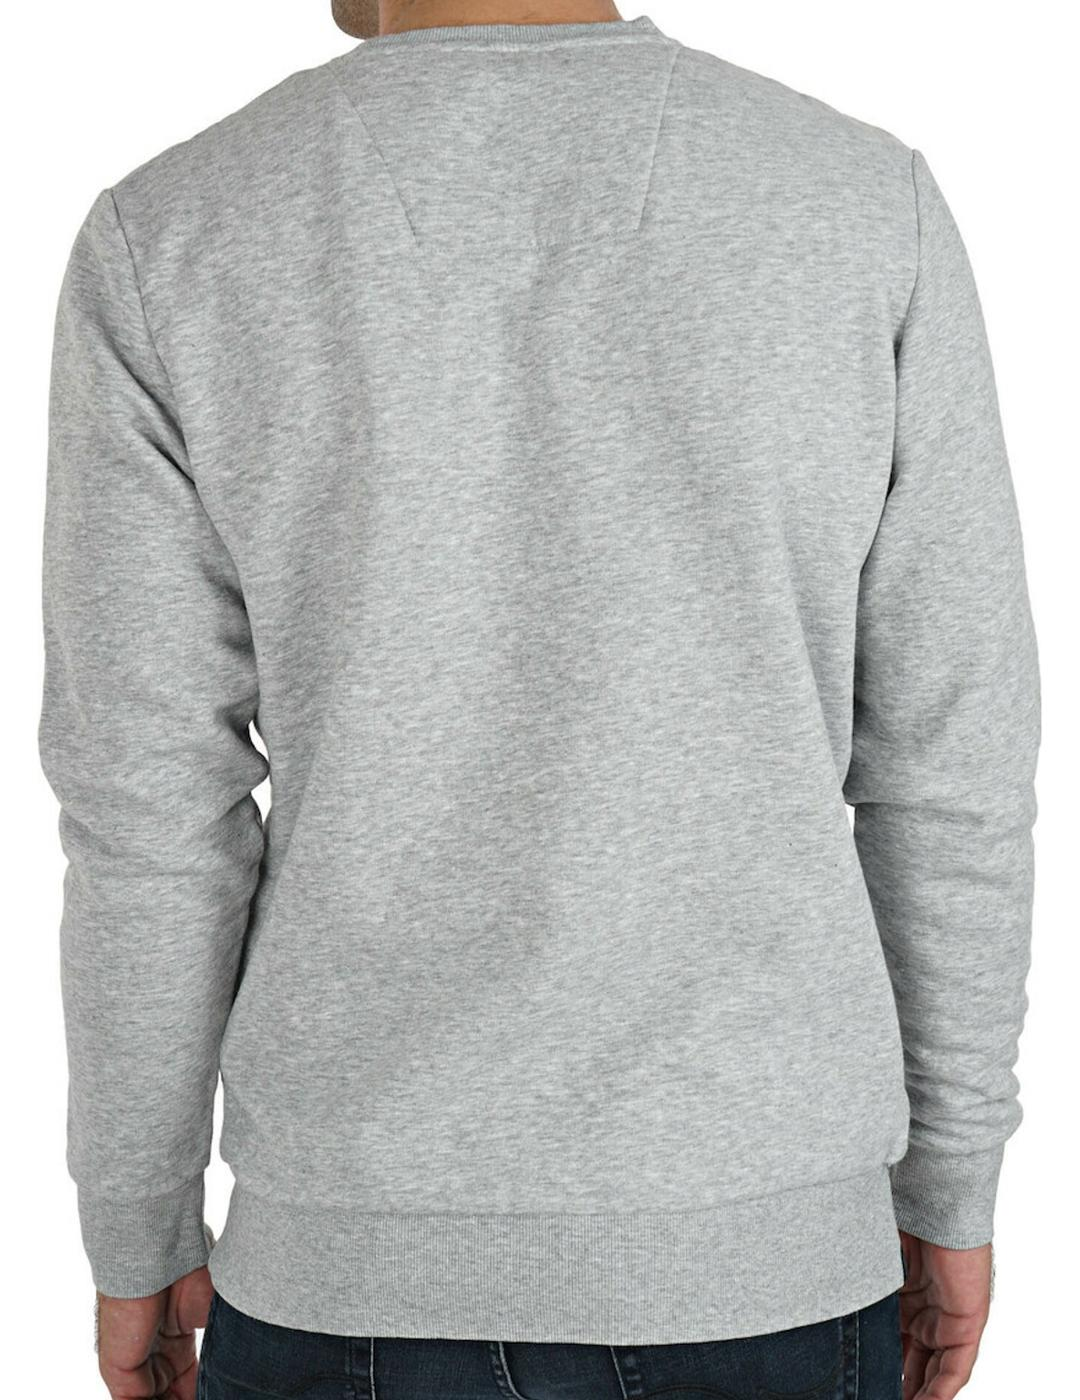 JCOSUPERMARIO SWEAT CREW NECK LIGHT-X